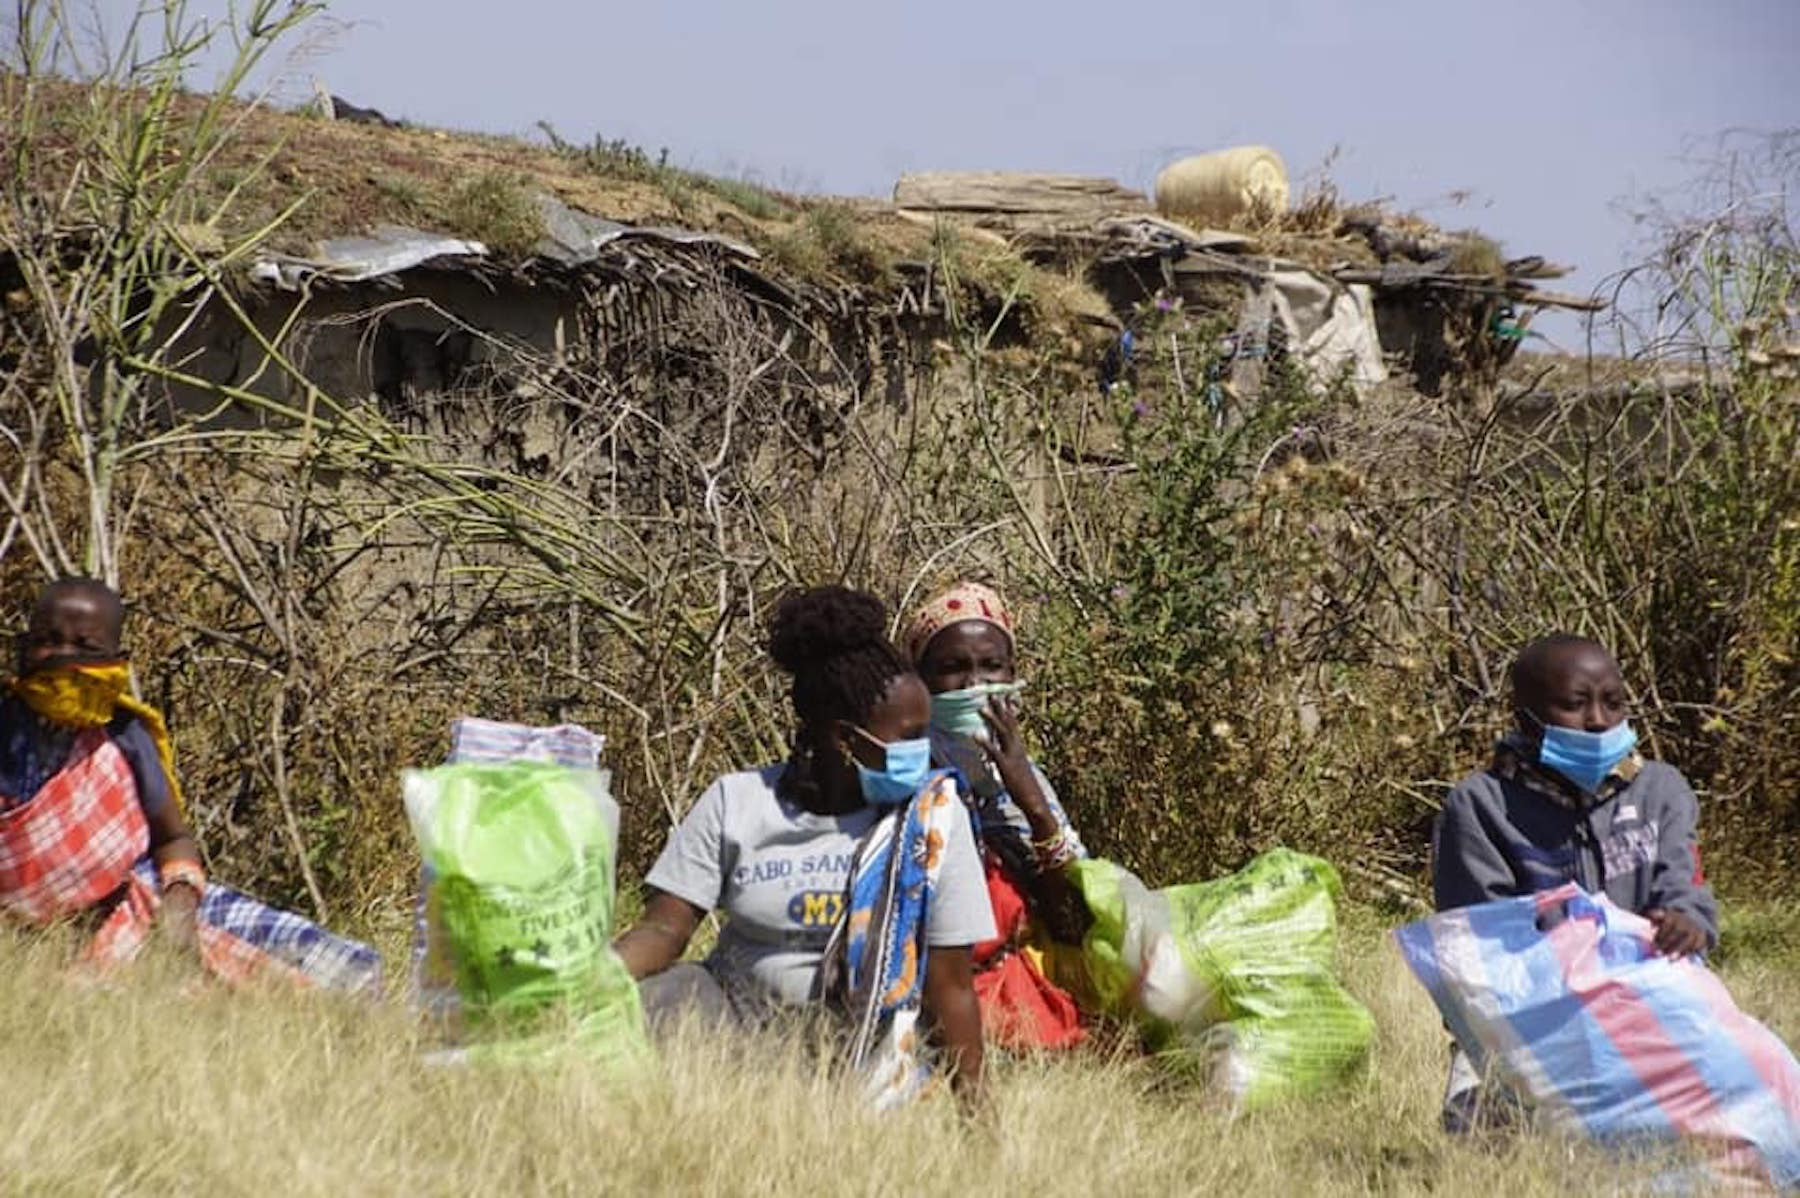 Taking Vegan Food Aid to the Maasai Mara, Kenya